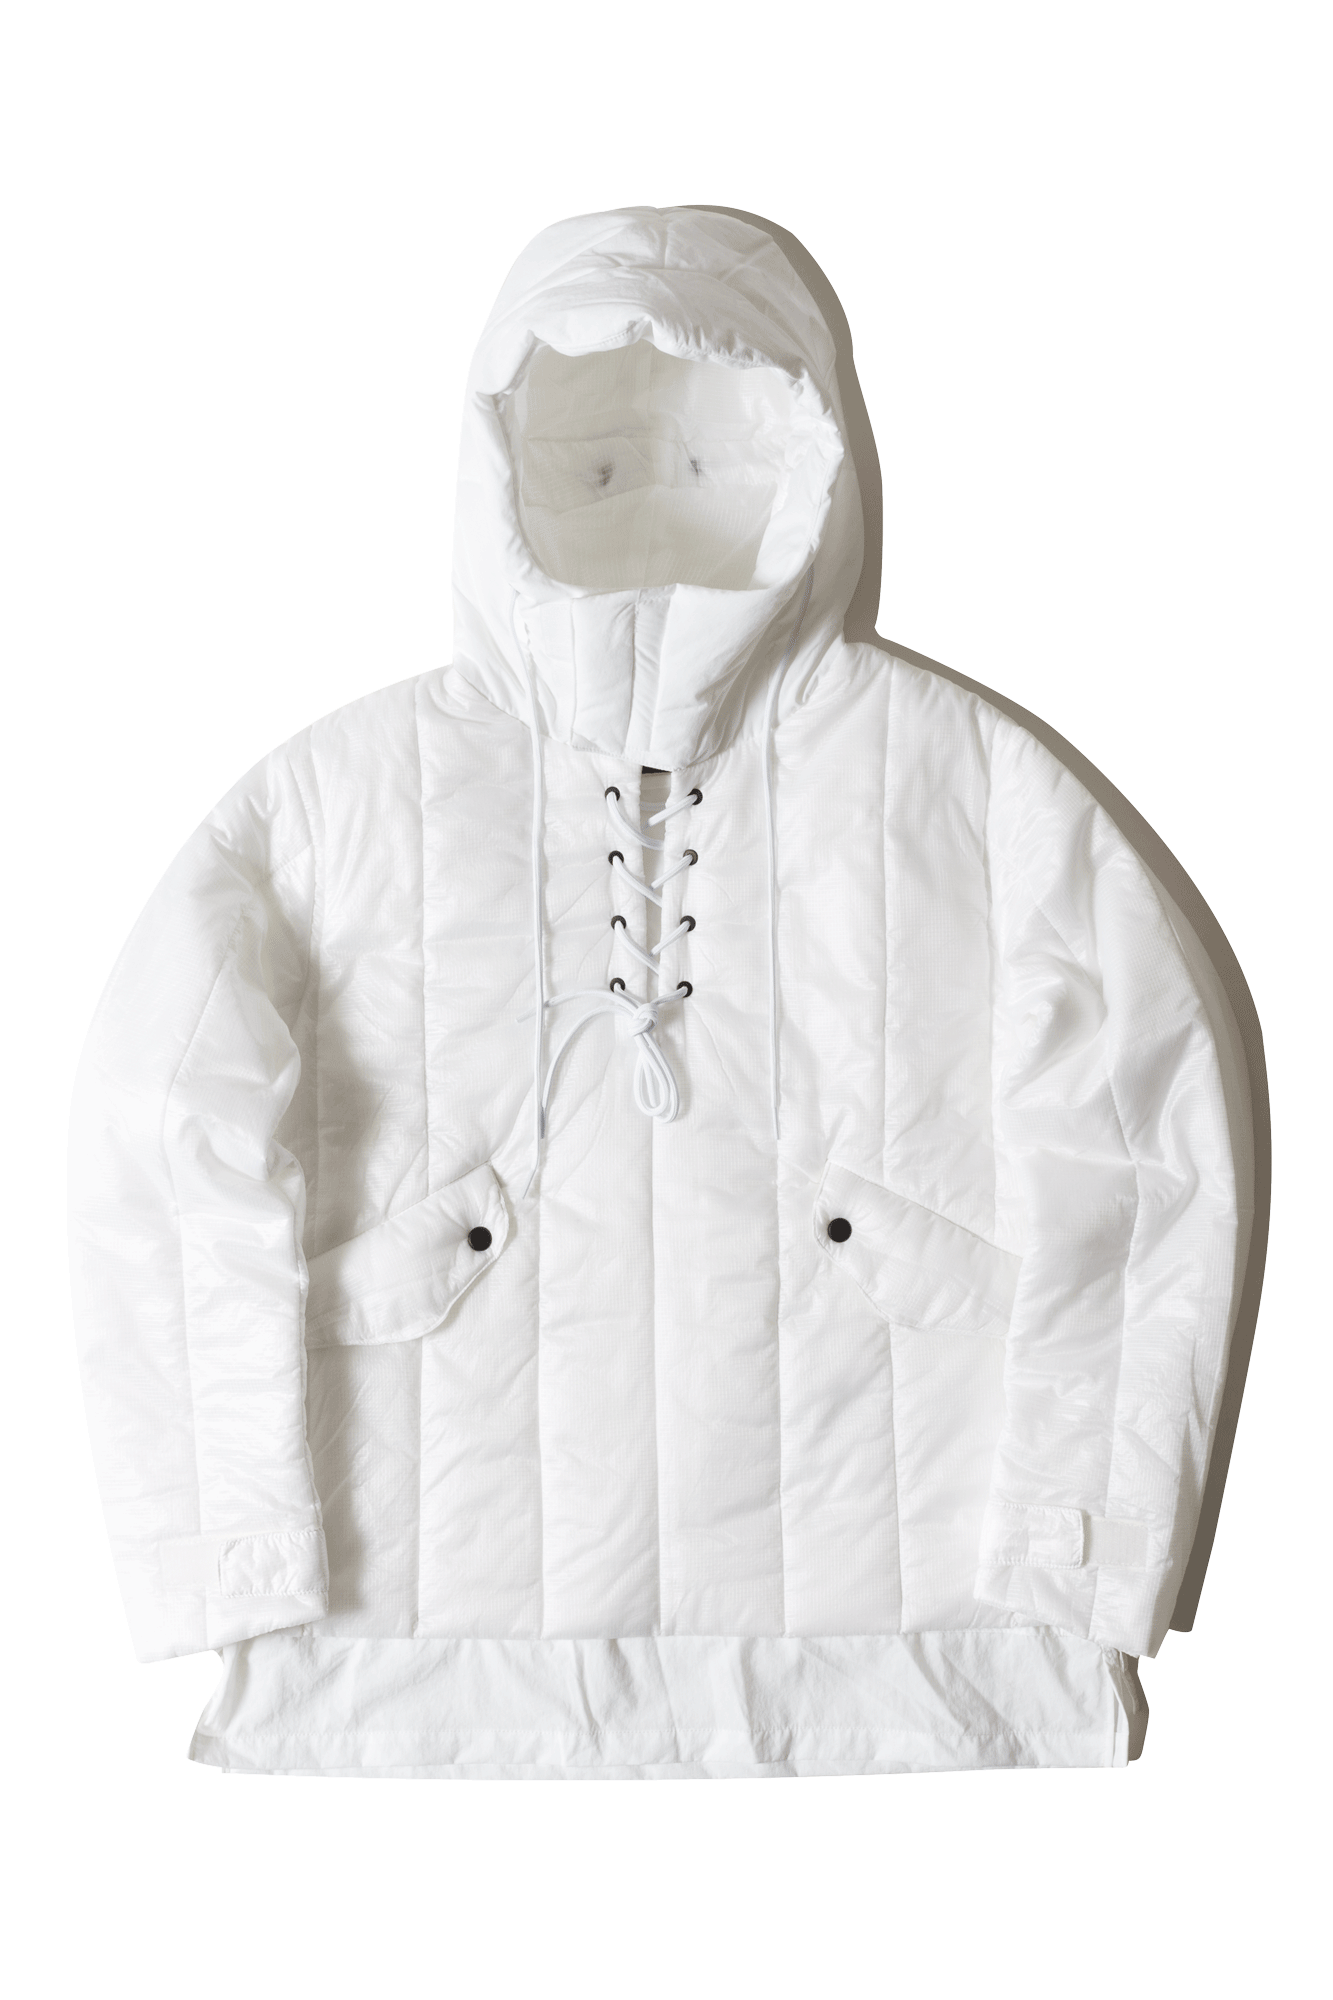 Nilmance Coats & Jackets Padded Layer Anorak White FW17AP07#000#WHITE#XS - One Block Down